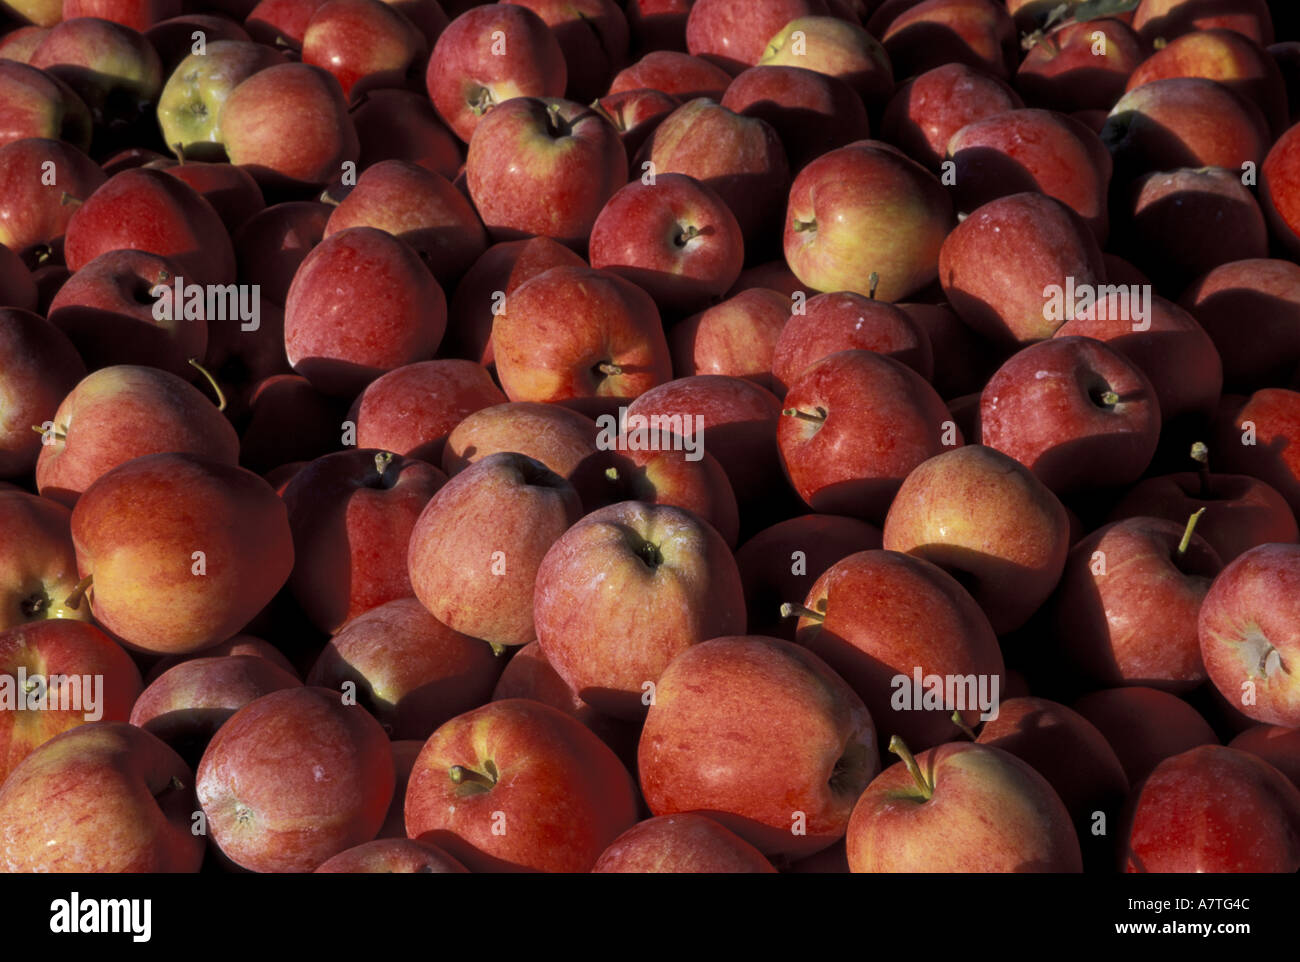 NA, USA, Washington, Monitor. Gala apples freshly picked and ready for sale Stock Photo